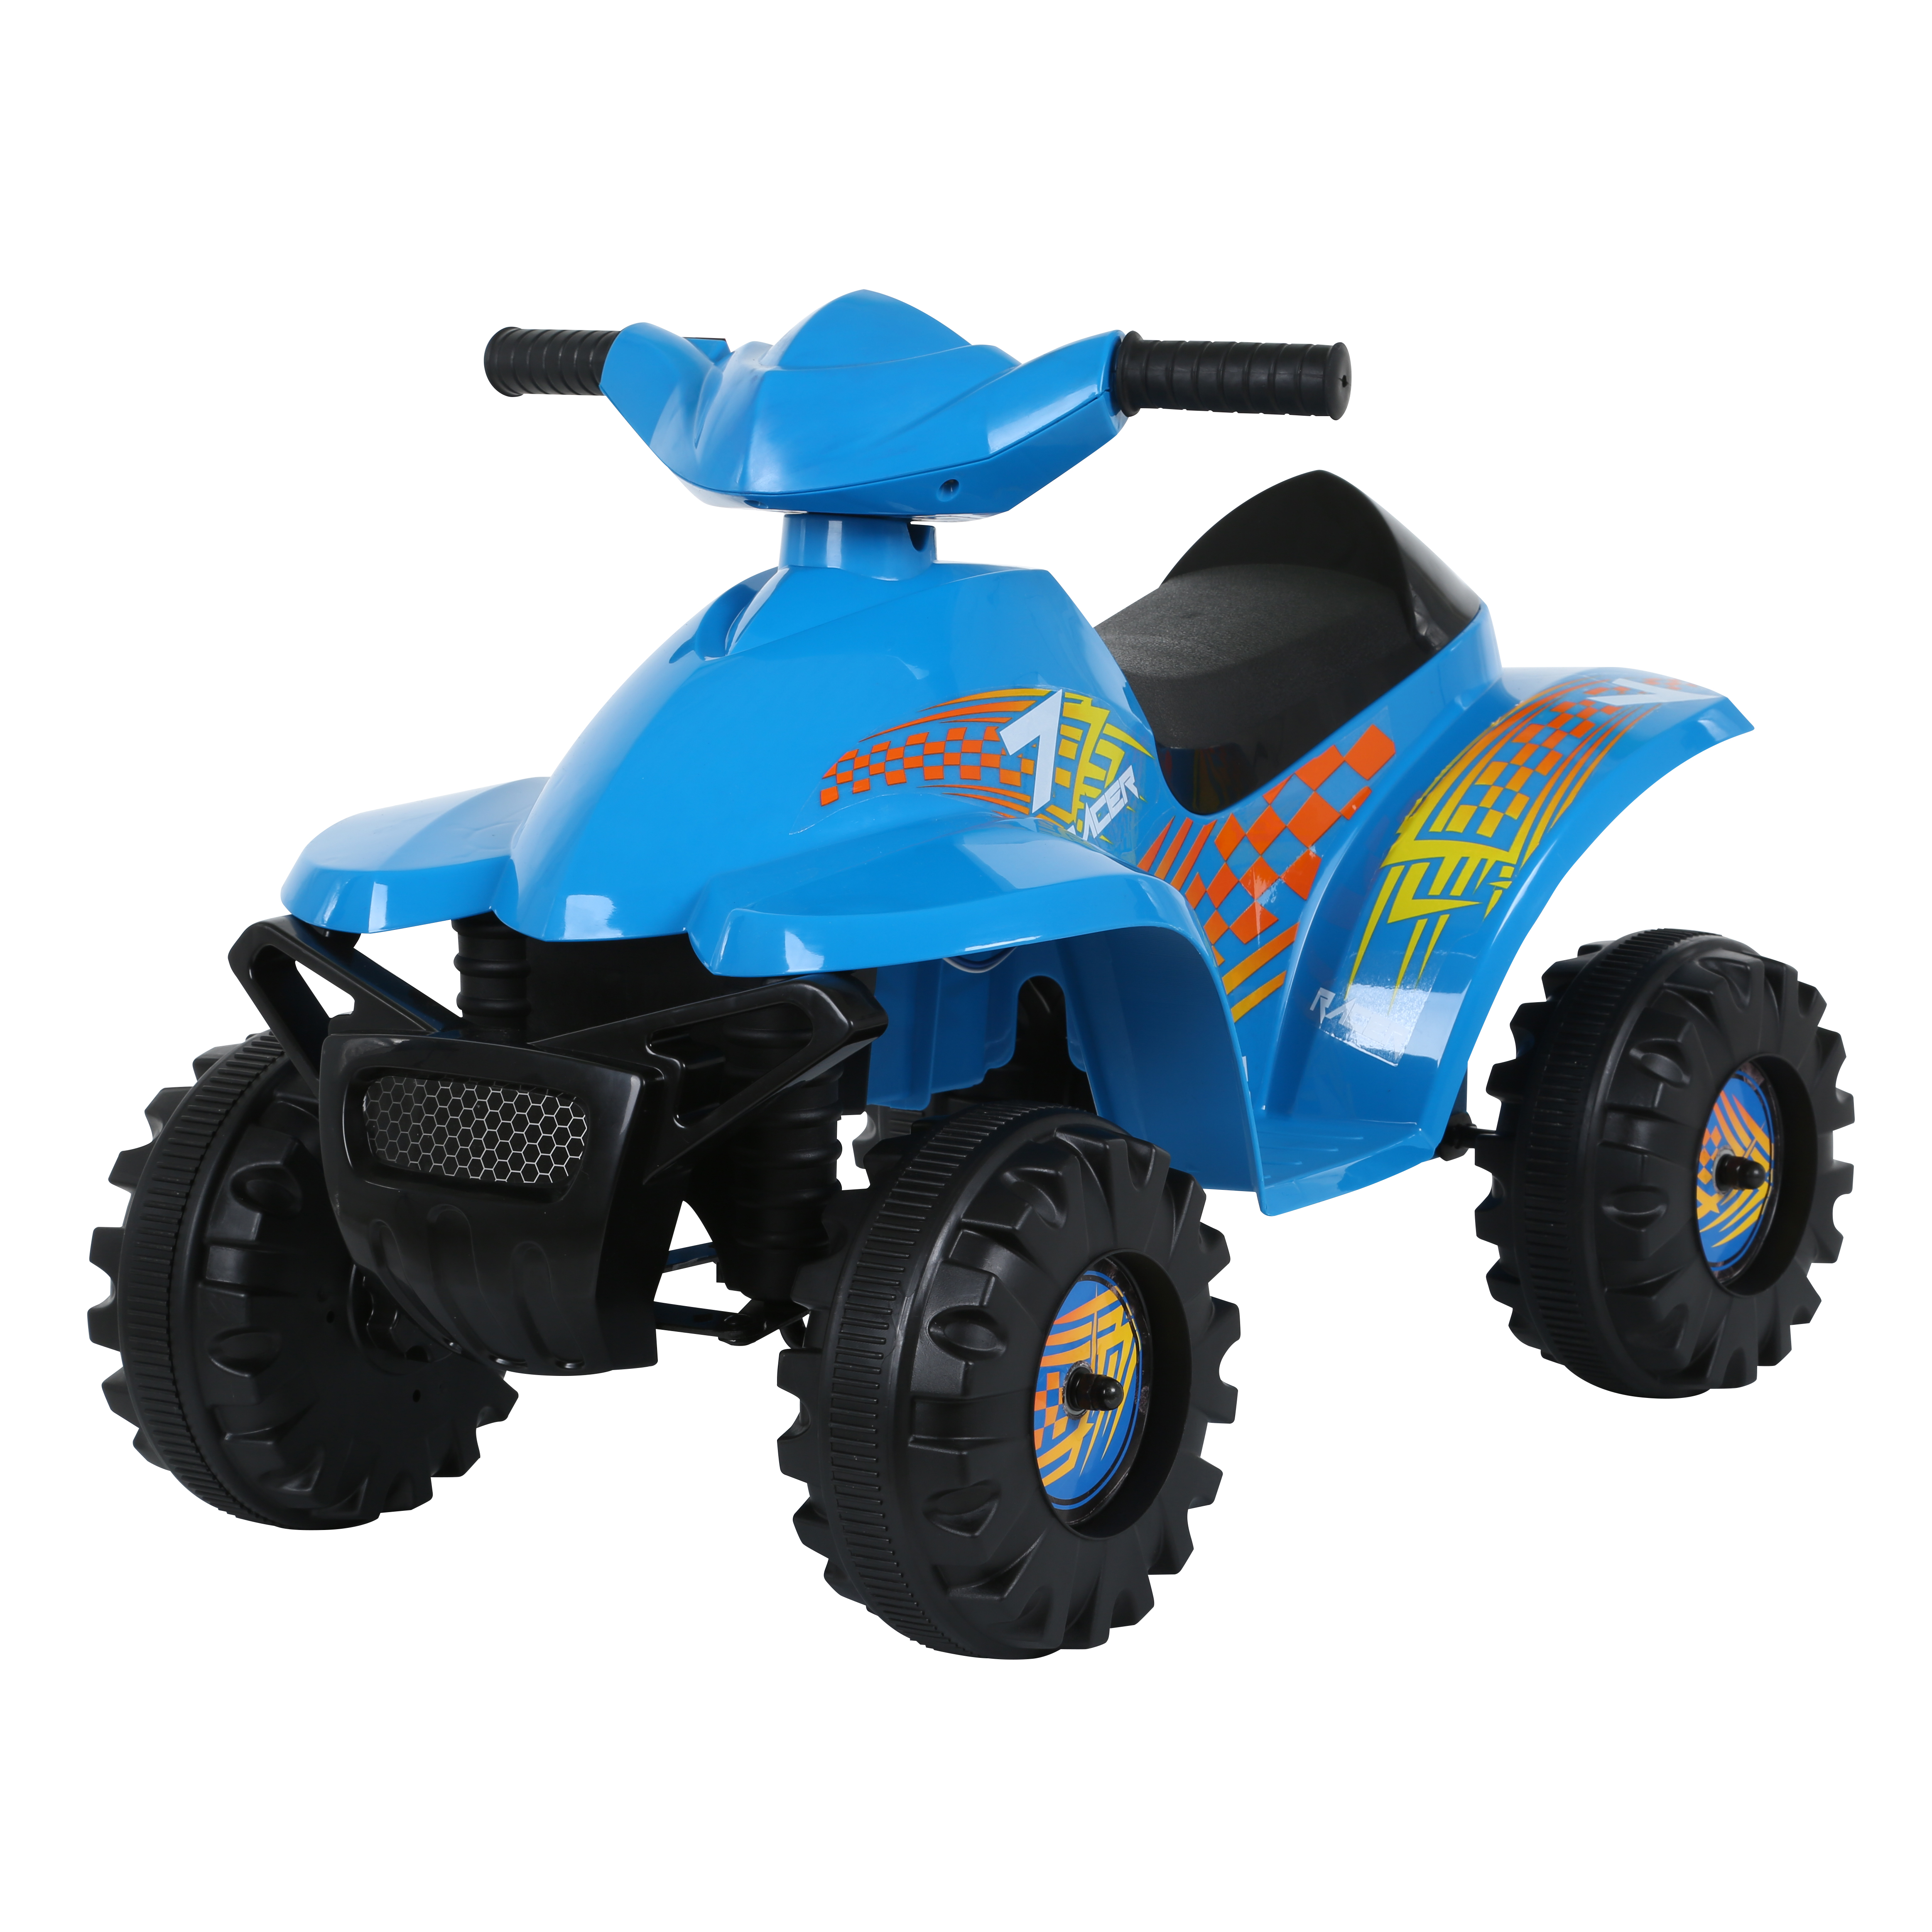 6V Mini Quad - Blue